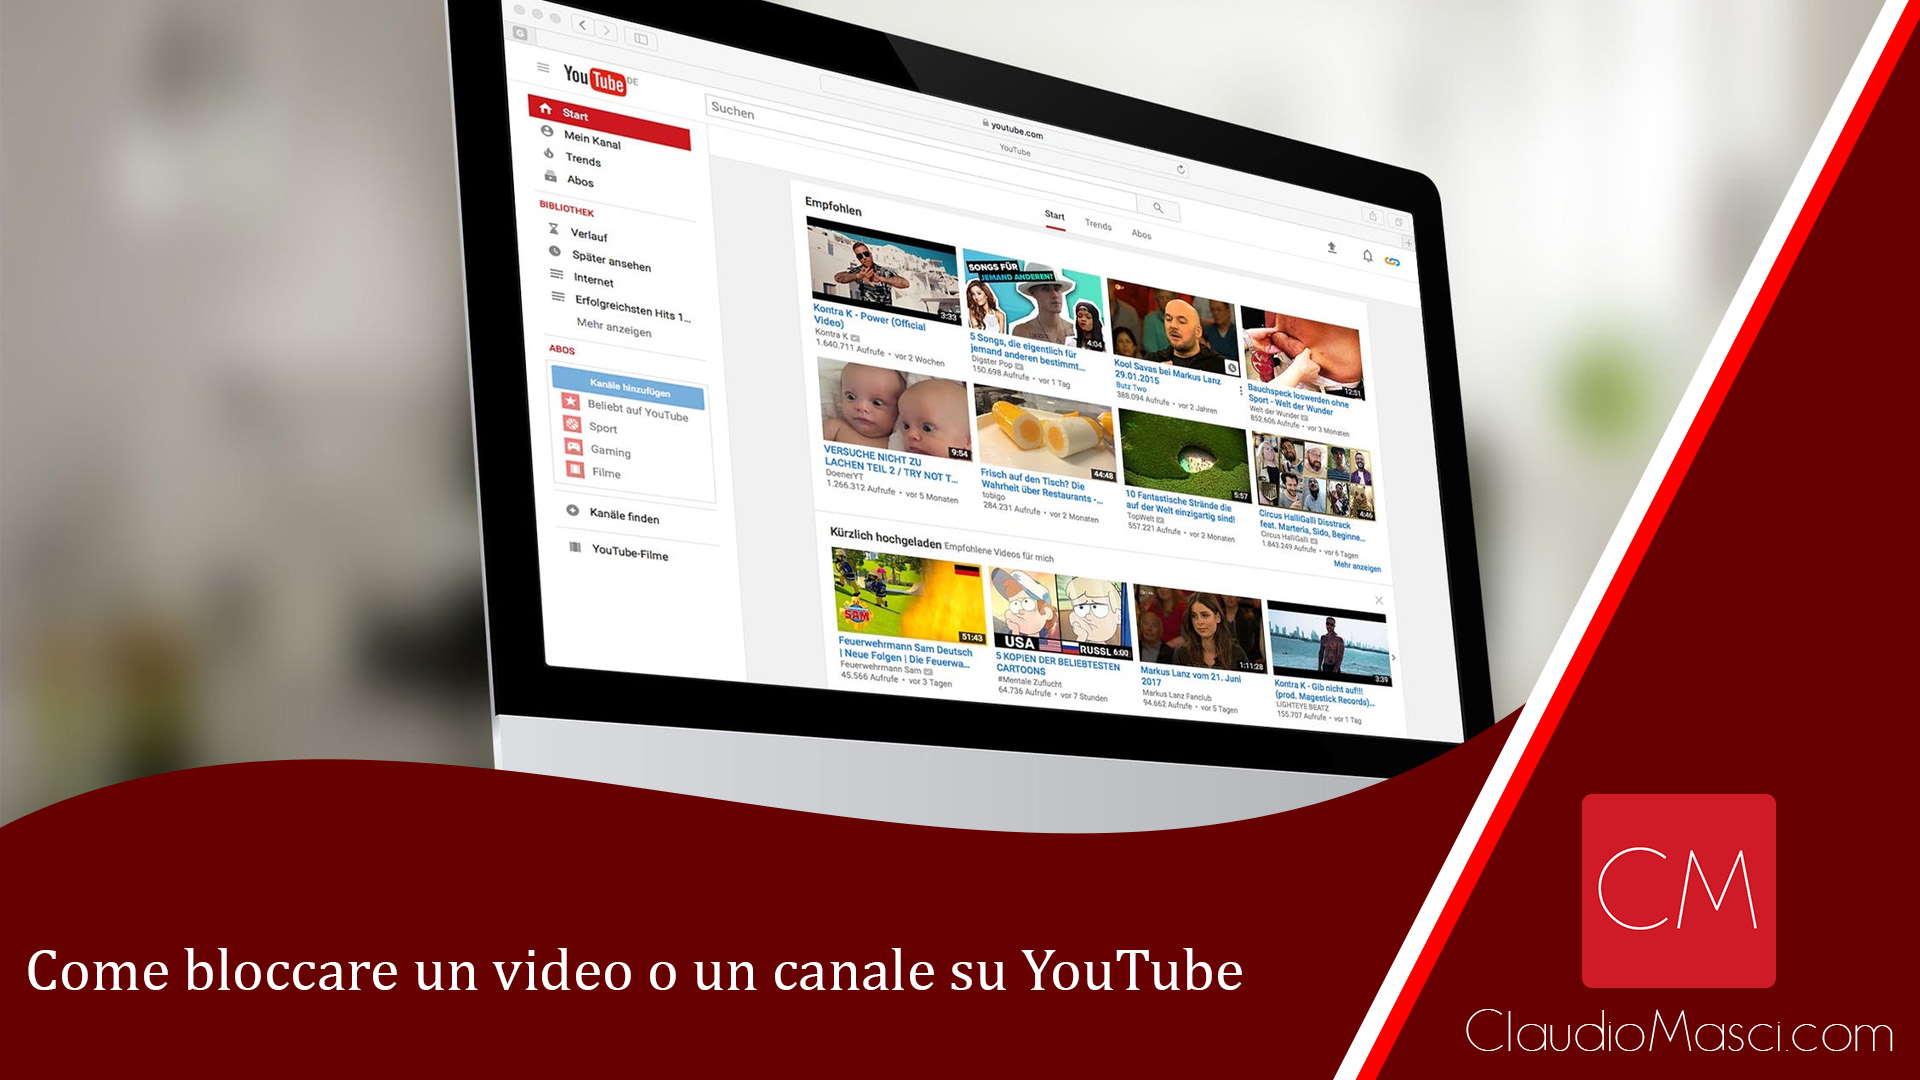 Come bloccare un video o un canale su YouTube